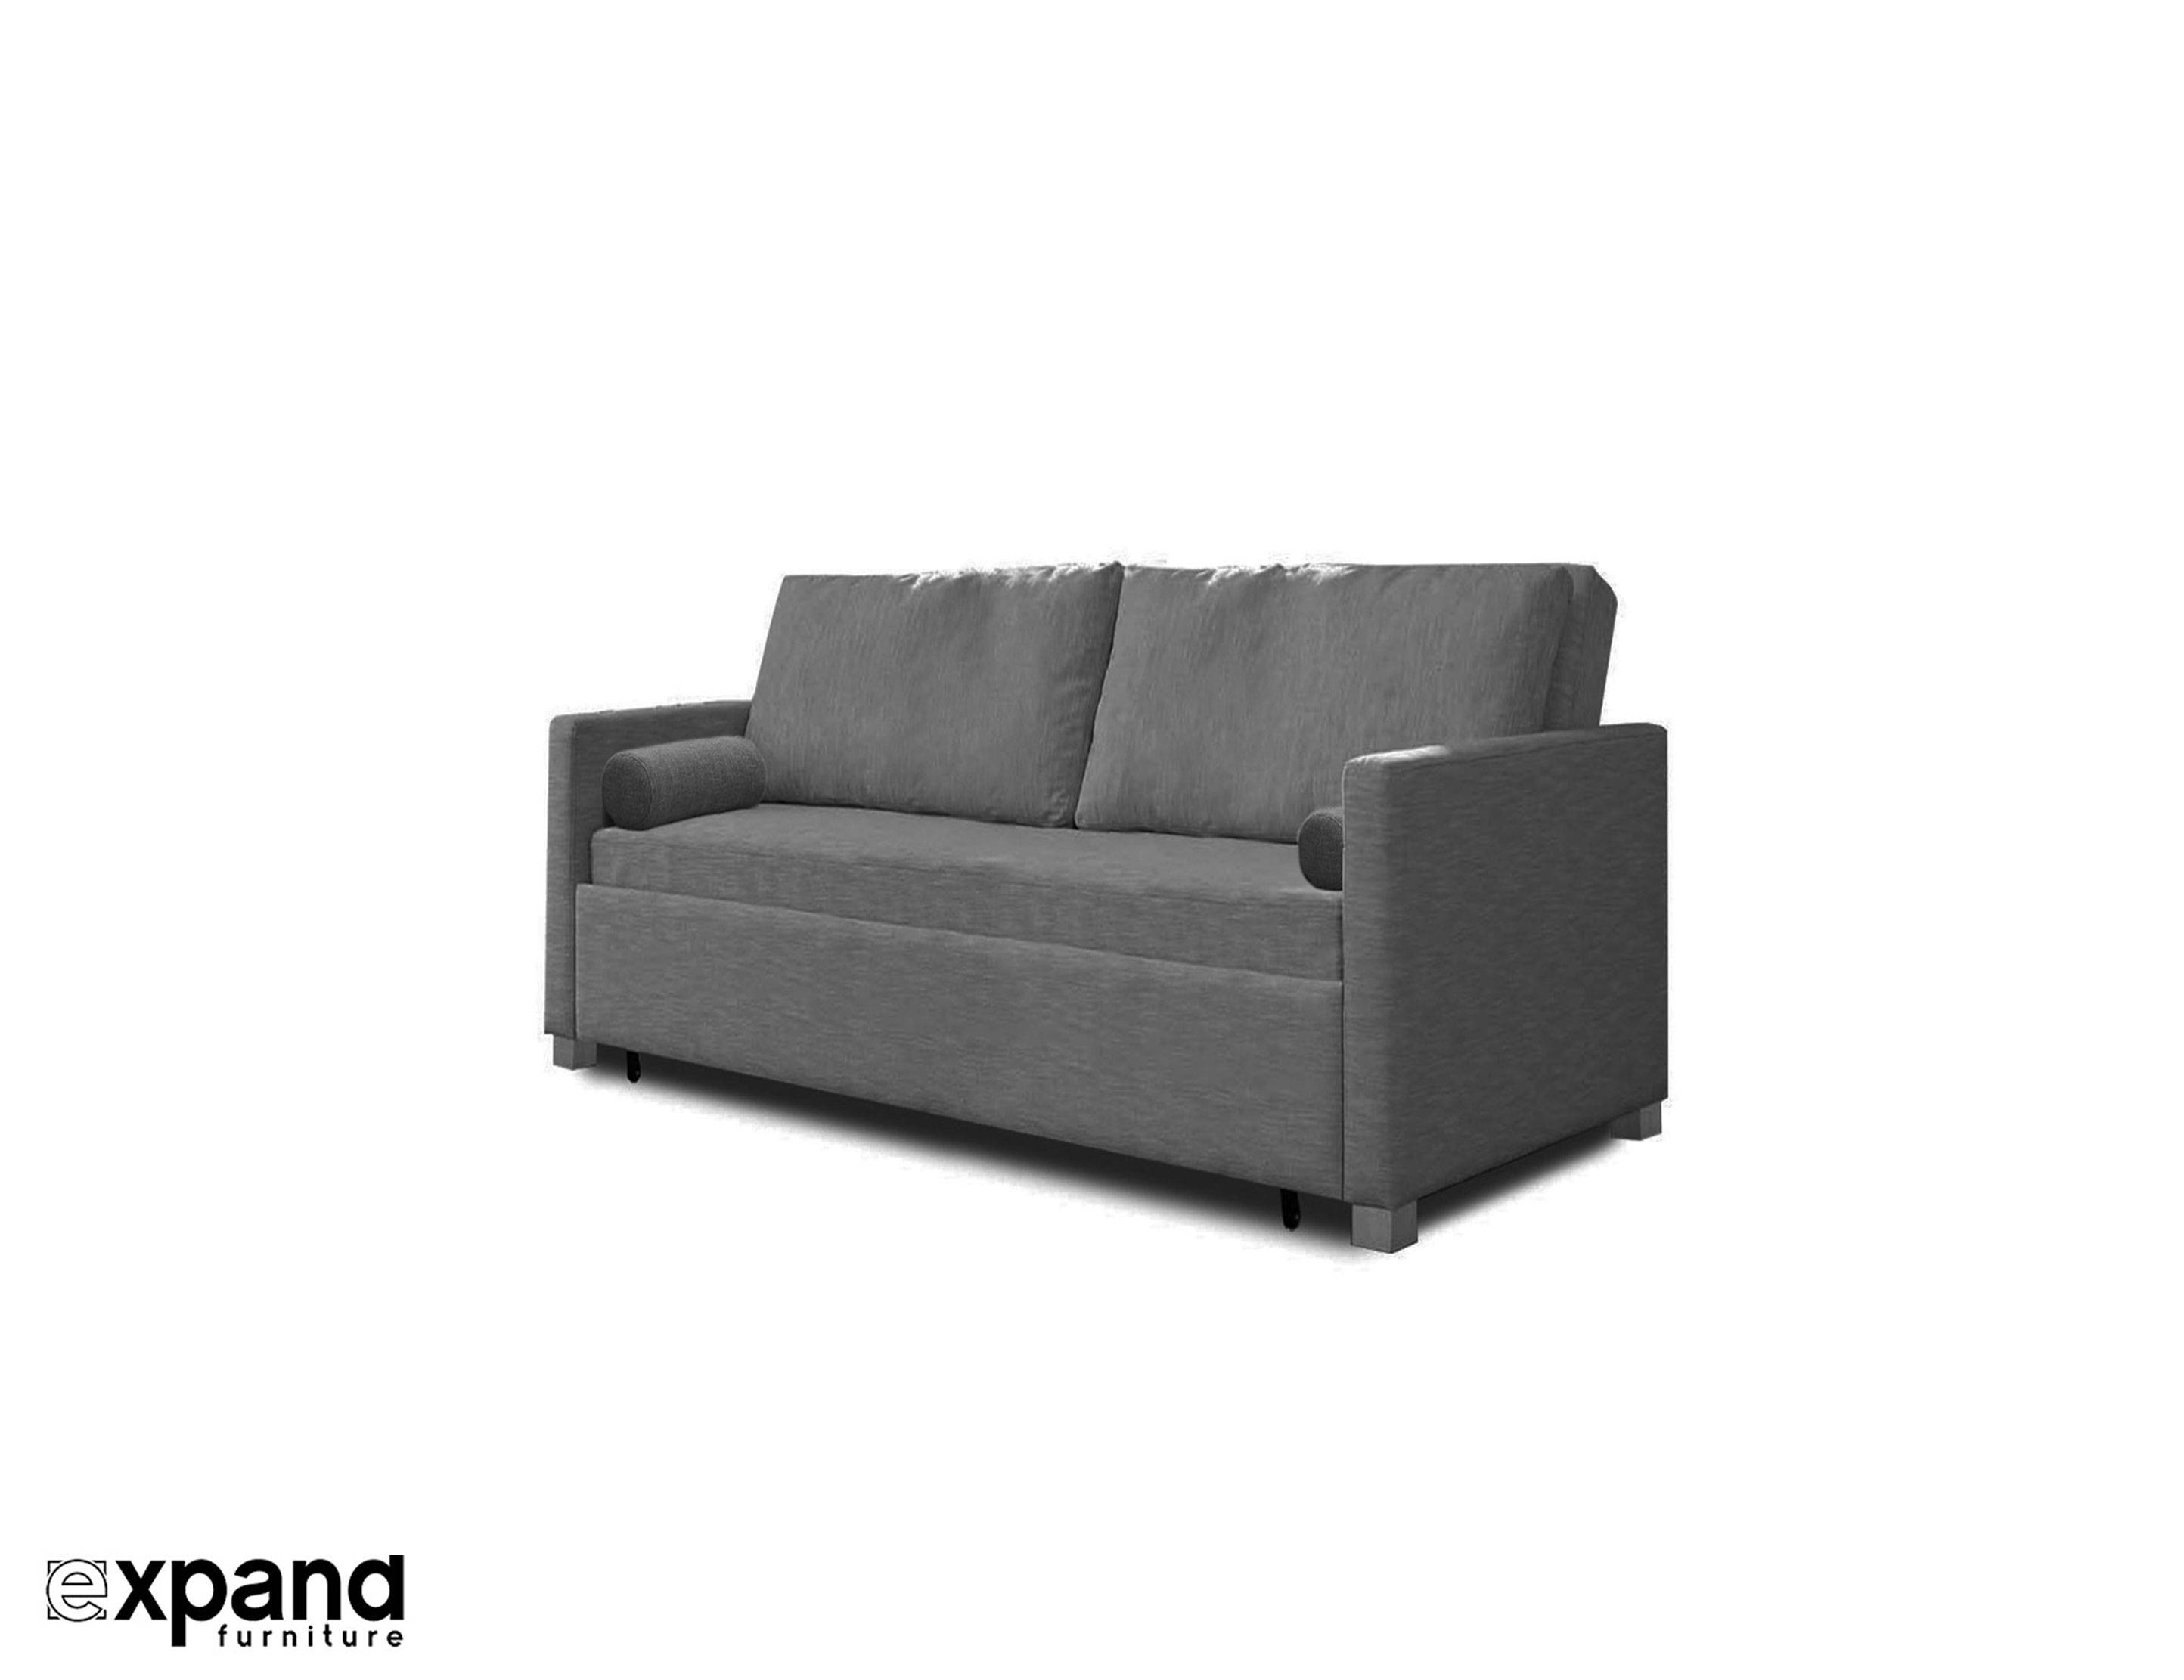 Harmony - Queen Size Memory Foam Sofa Bed | Expand Furniture throughout Sofa Beds Queen (Image 14 of 30)